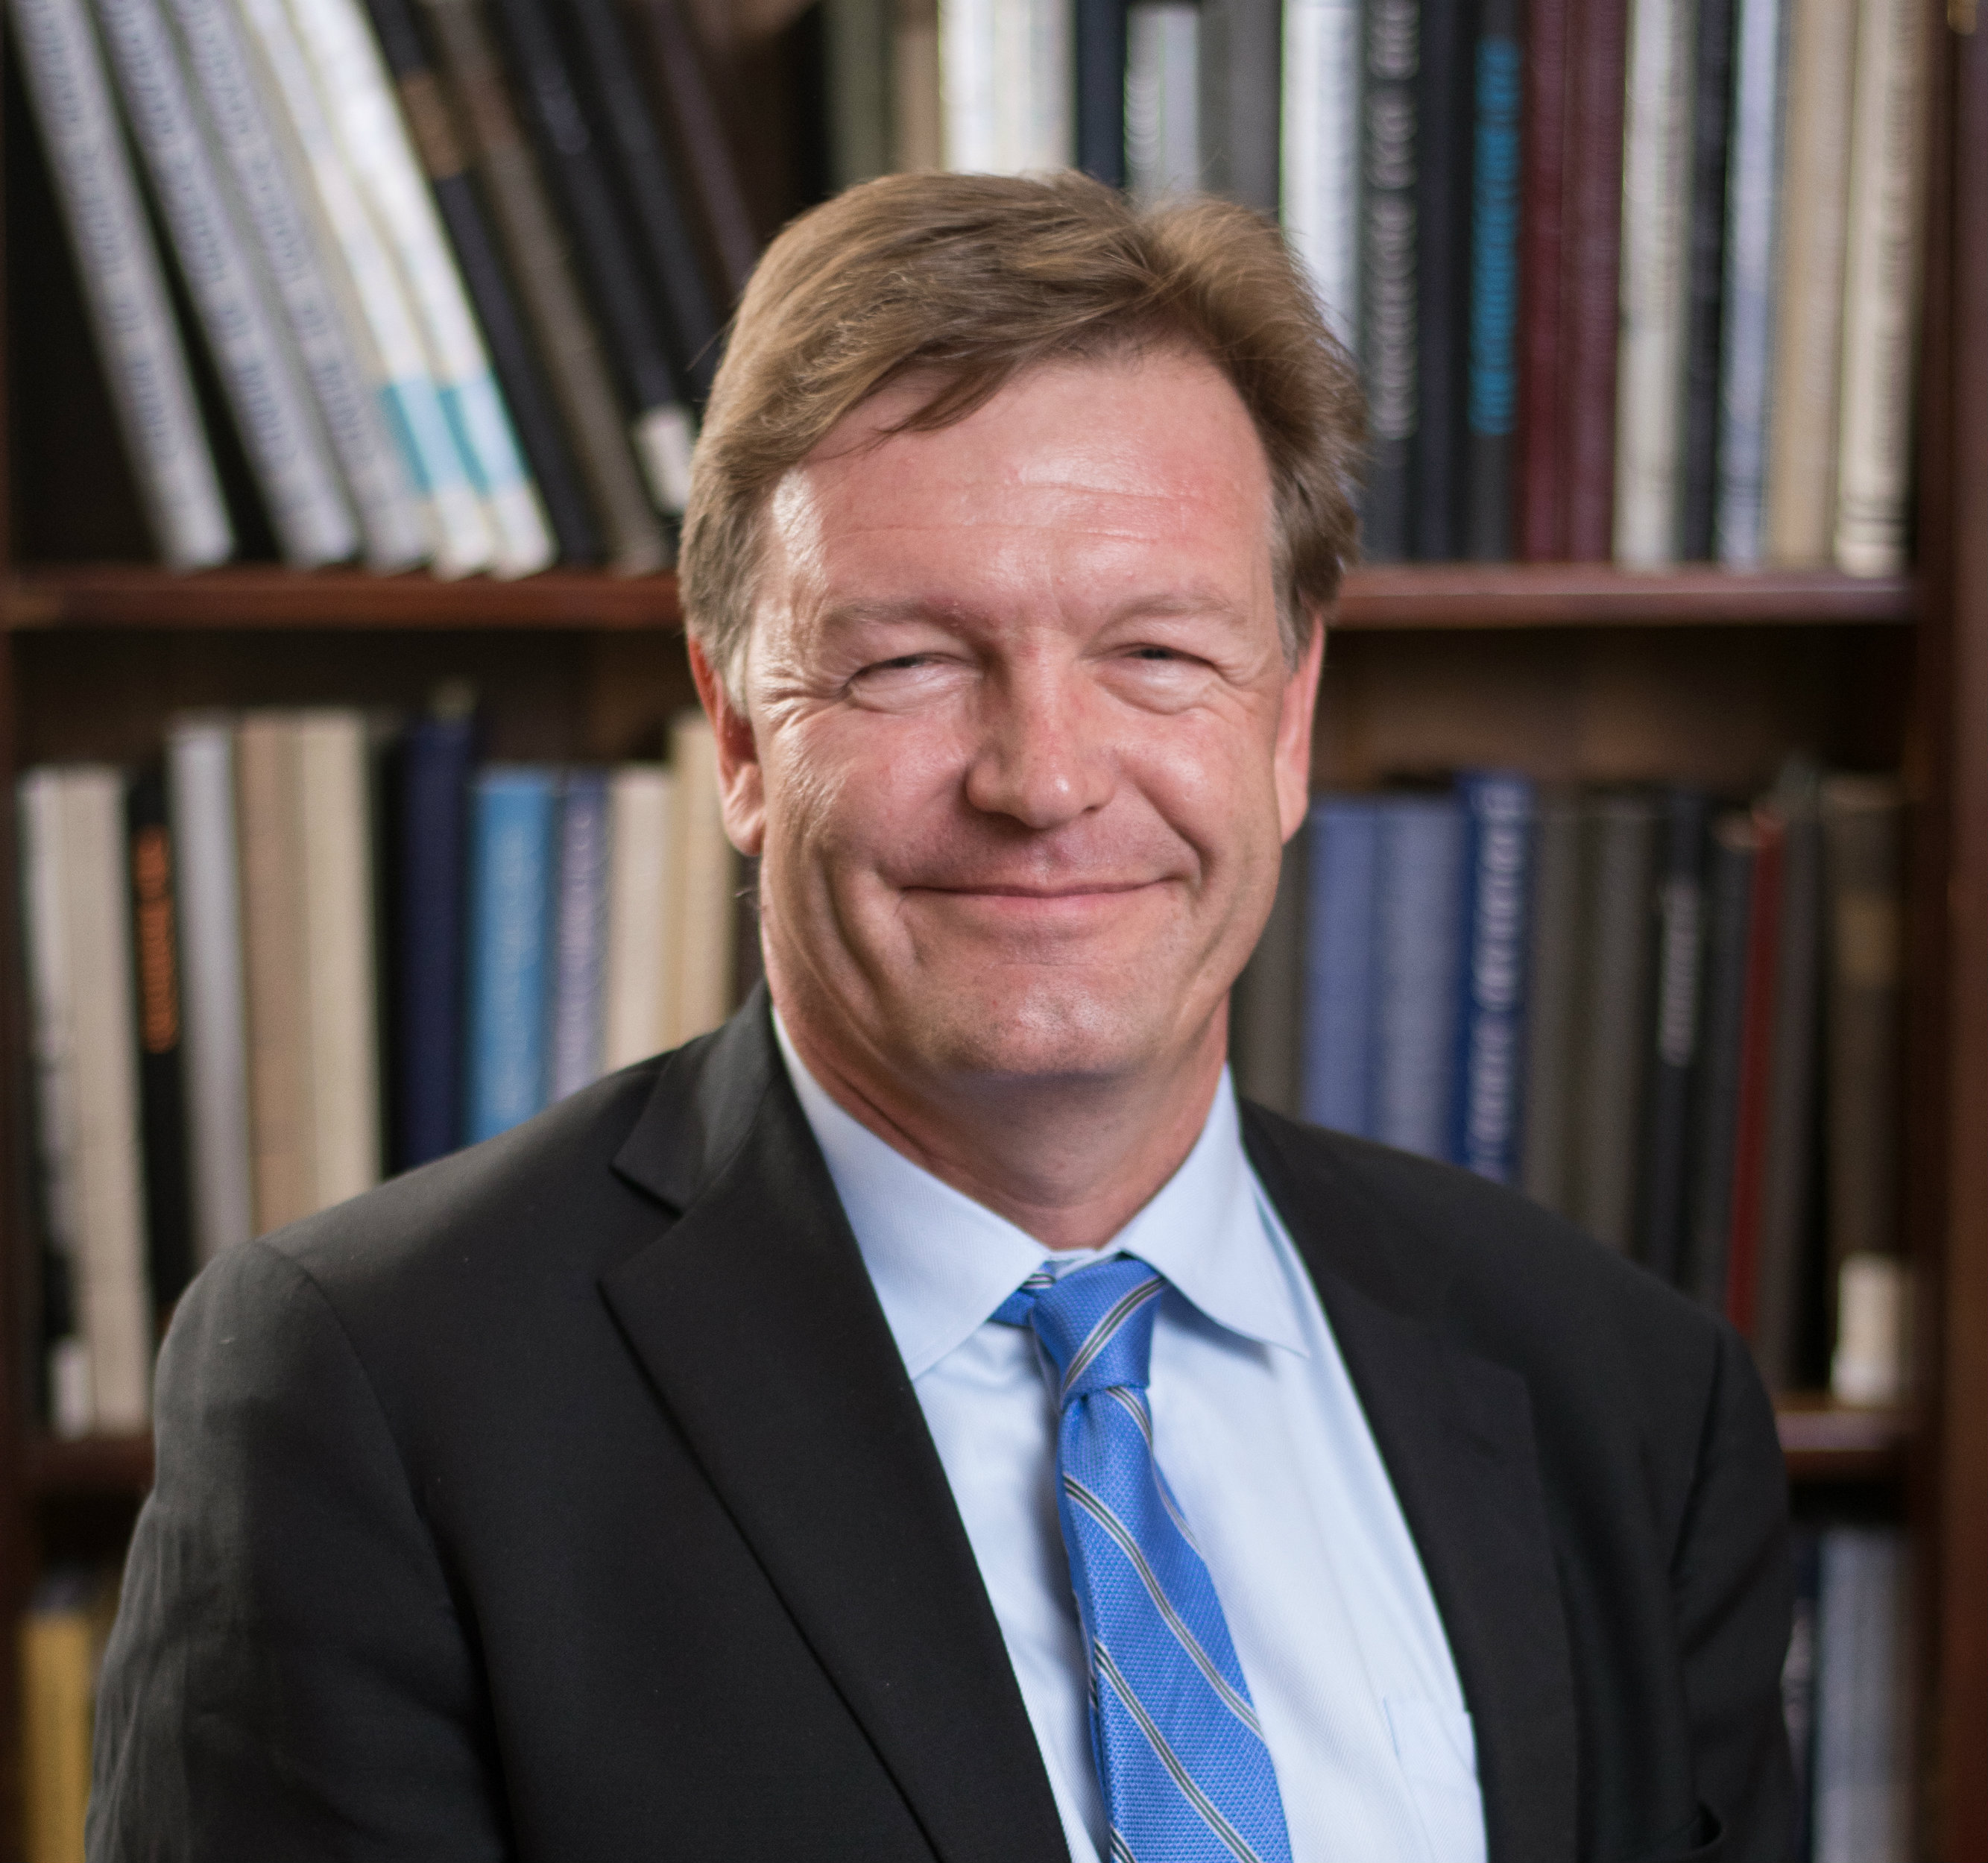 Colorado School of Mines professor Andrew Herring